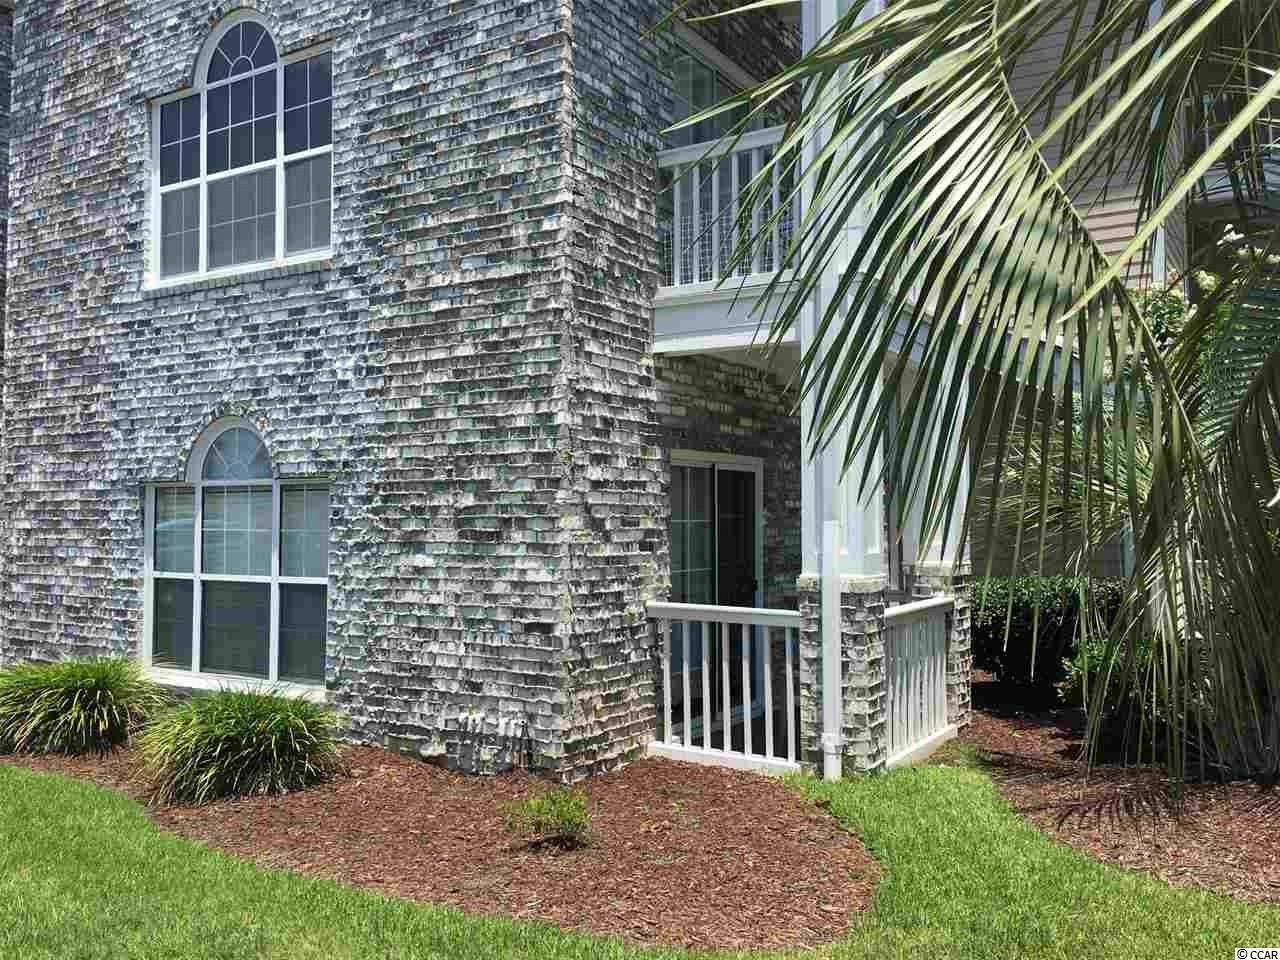 MAGNOLIA PLACE condo for sale in Myrtle Beach, SC